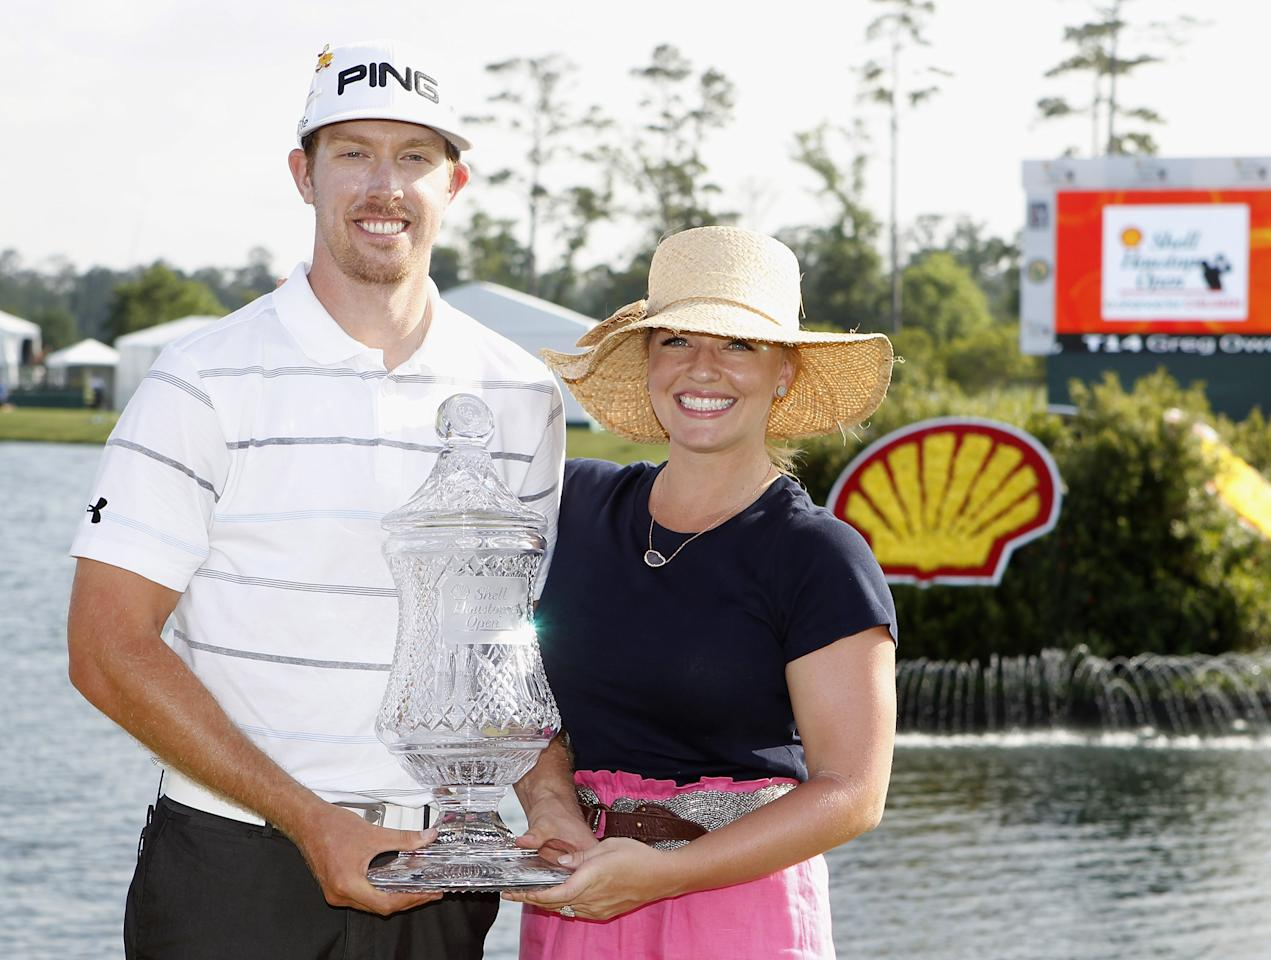 HUMBLE, TX - APRIL 01:  Hunter Mahan holds the winners trophy with his wife, Kandi, on the green of the 18th hole after the final round of the Shell Houston Open at Redstone Golf Club on April 1, 2012 in Humble, Texas.  (Photo by Matt Sullivan/Getty Images)